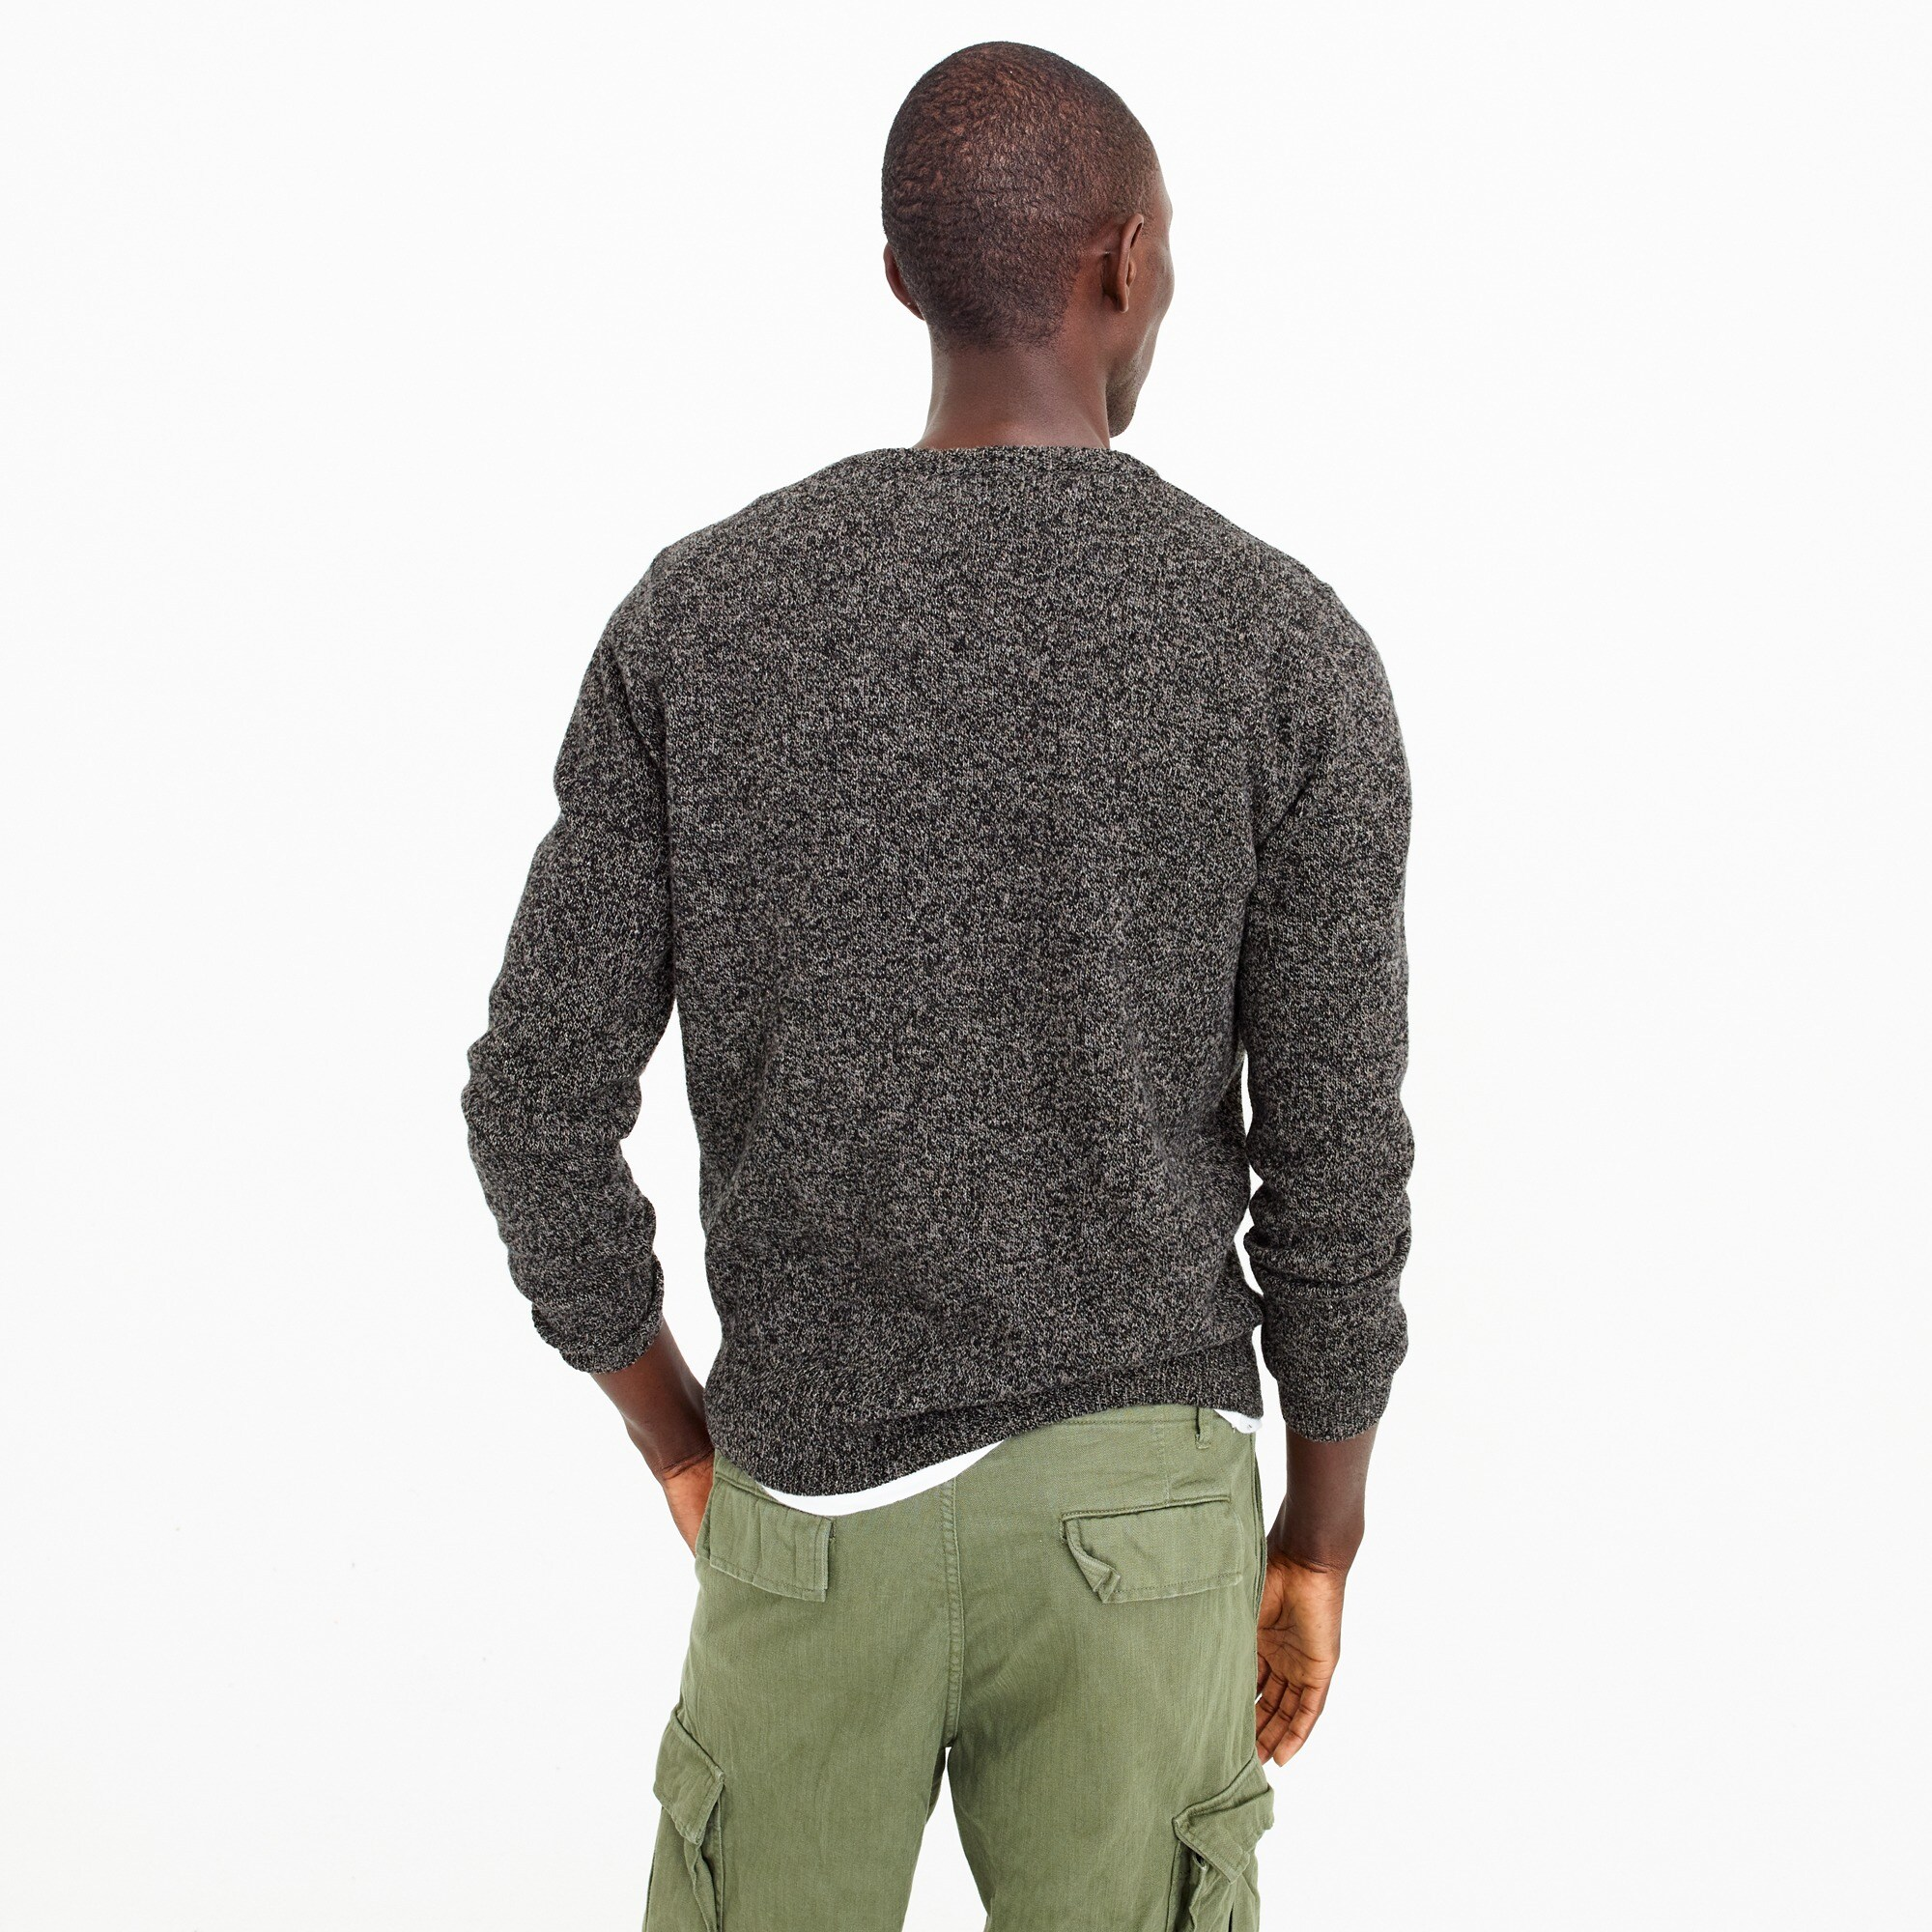 Image 3 for Slim lambswool V-neck sweater